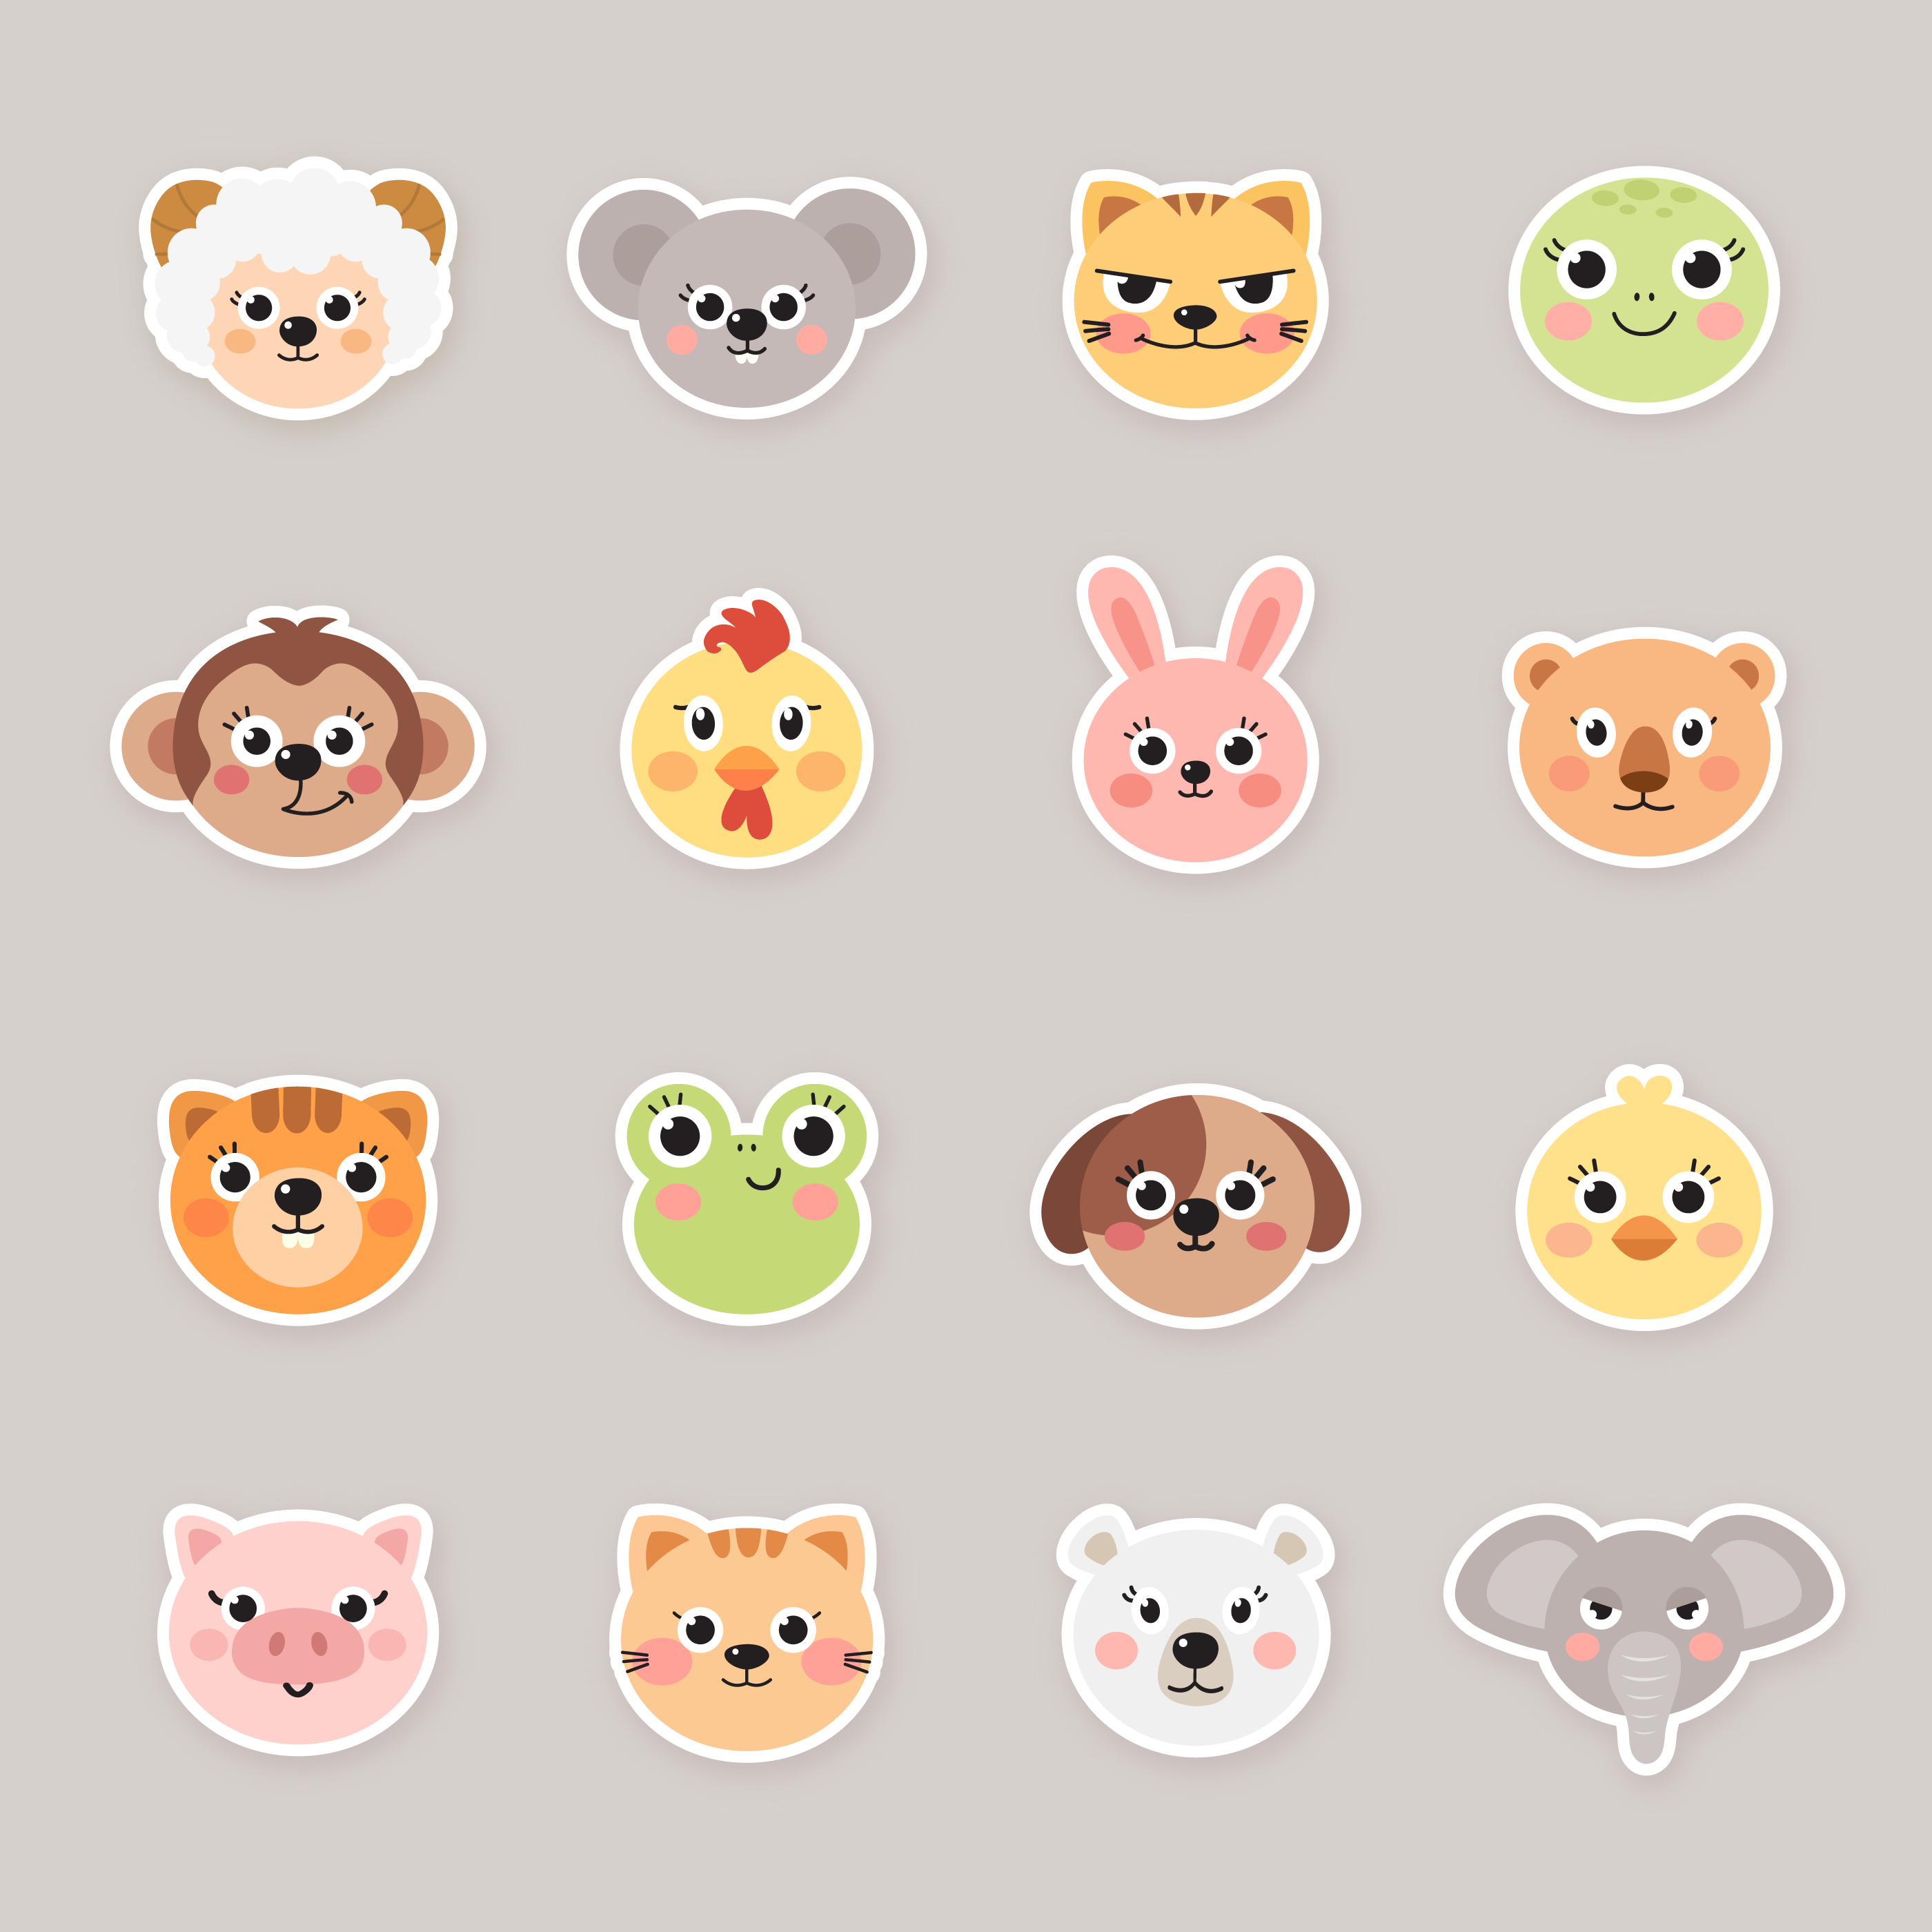 20+ Free Clipart Images Cartoon Animals